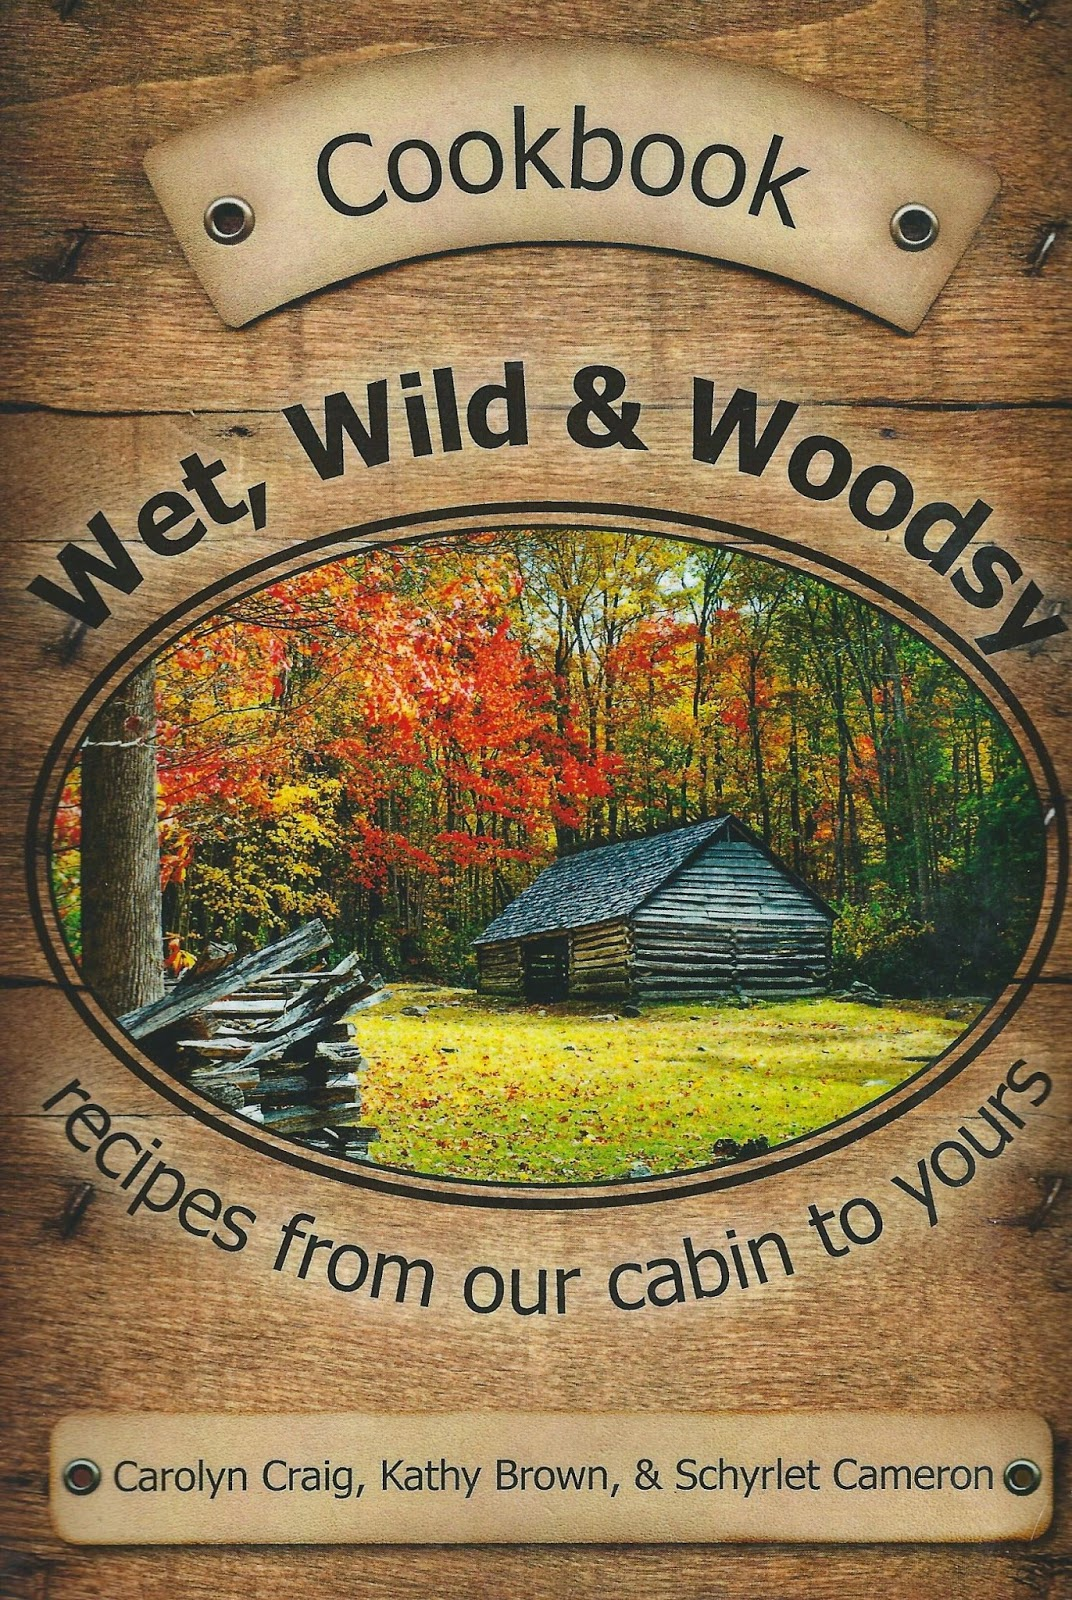 Wet Wild and Woodsy Cookbook offering 450 recipes